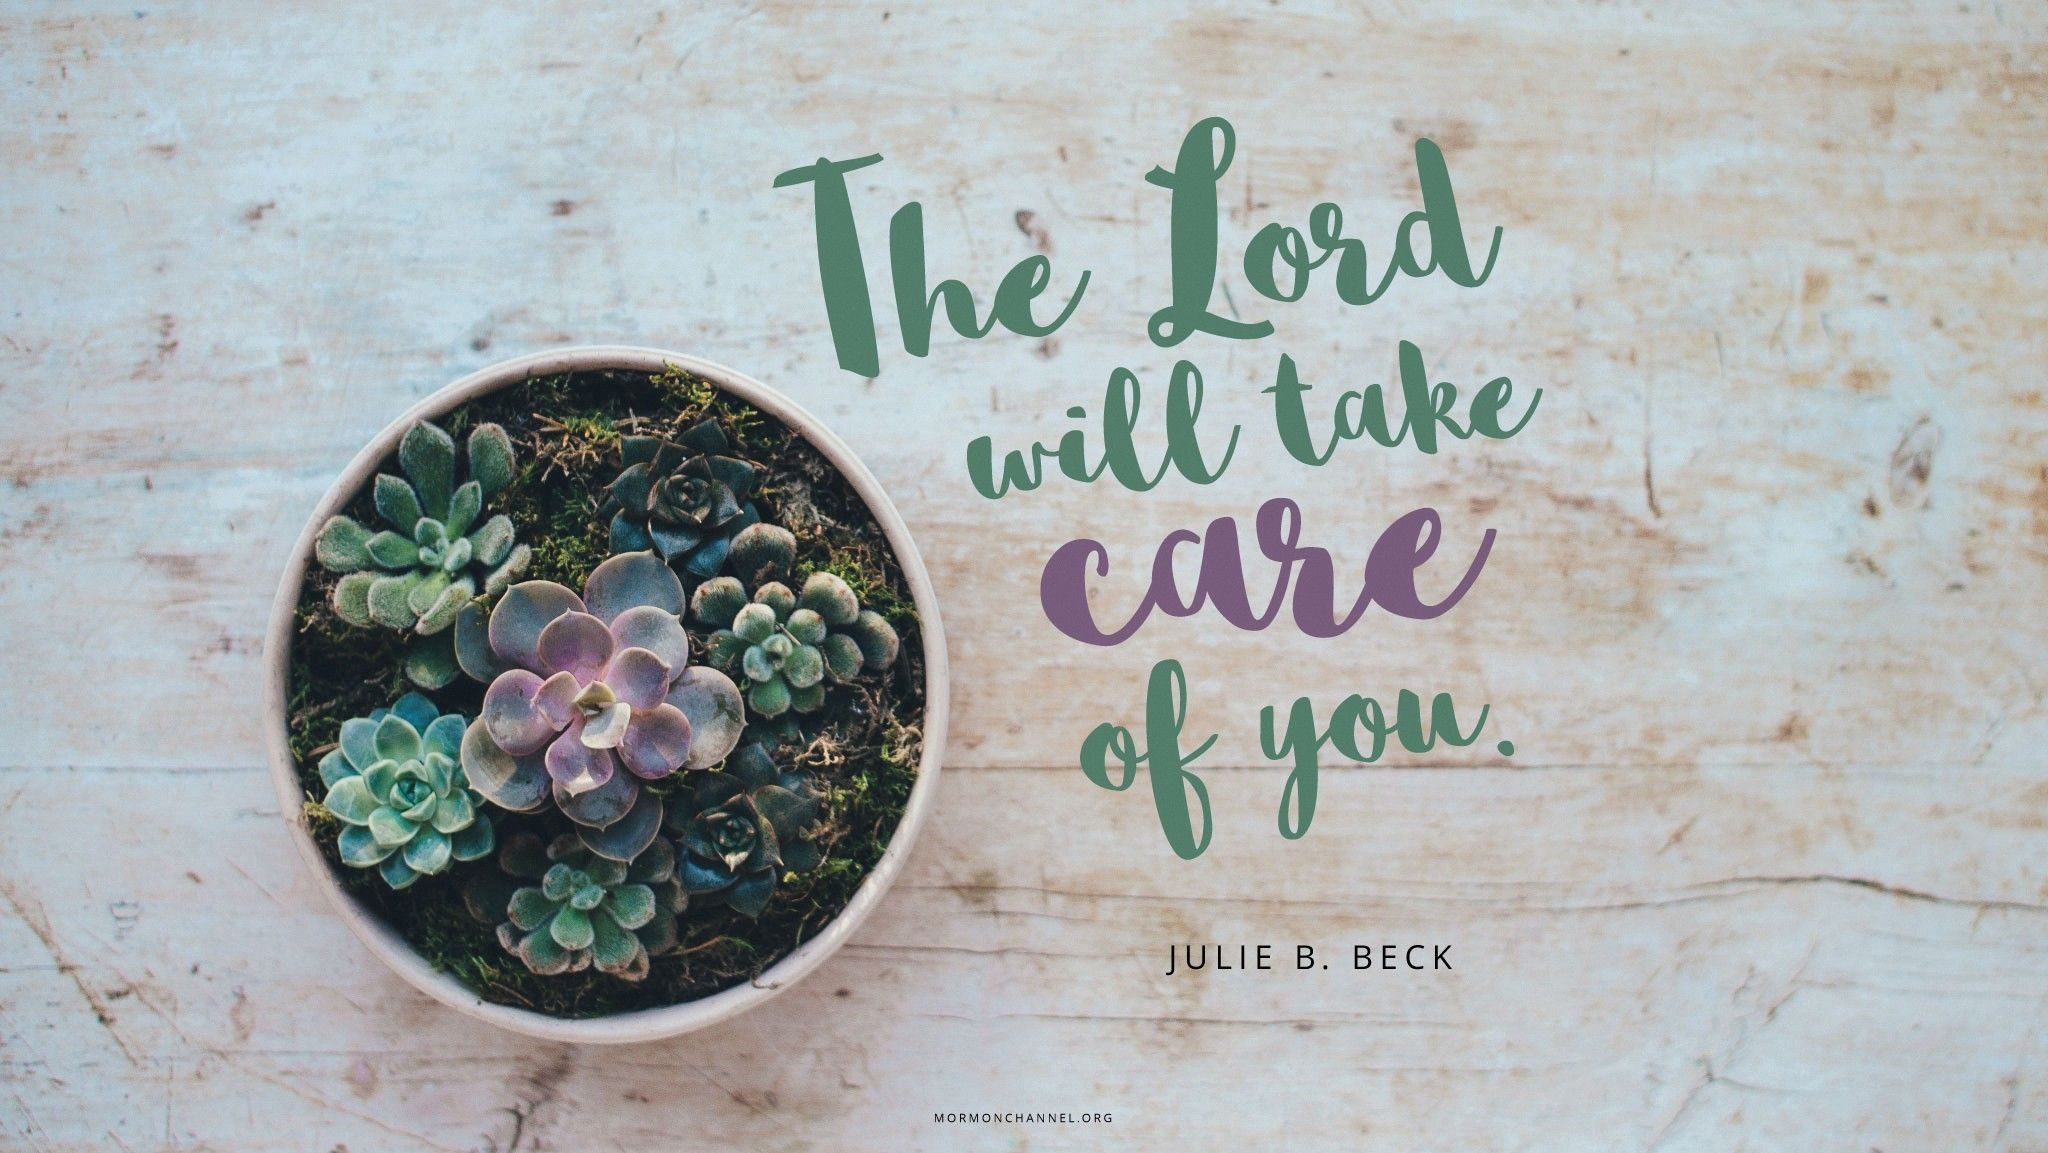 """""""The Lord will take care of you.""""—Sister Julie B. Beck, """"There Is Hope Smiling Brightly before Us"""" © undefined ipCode 1."""